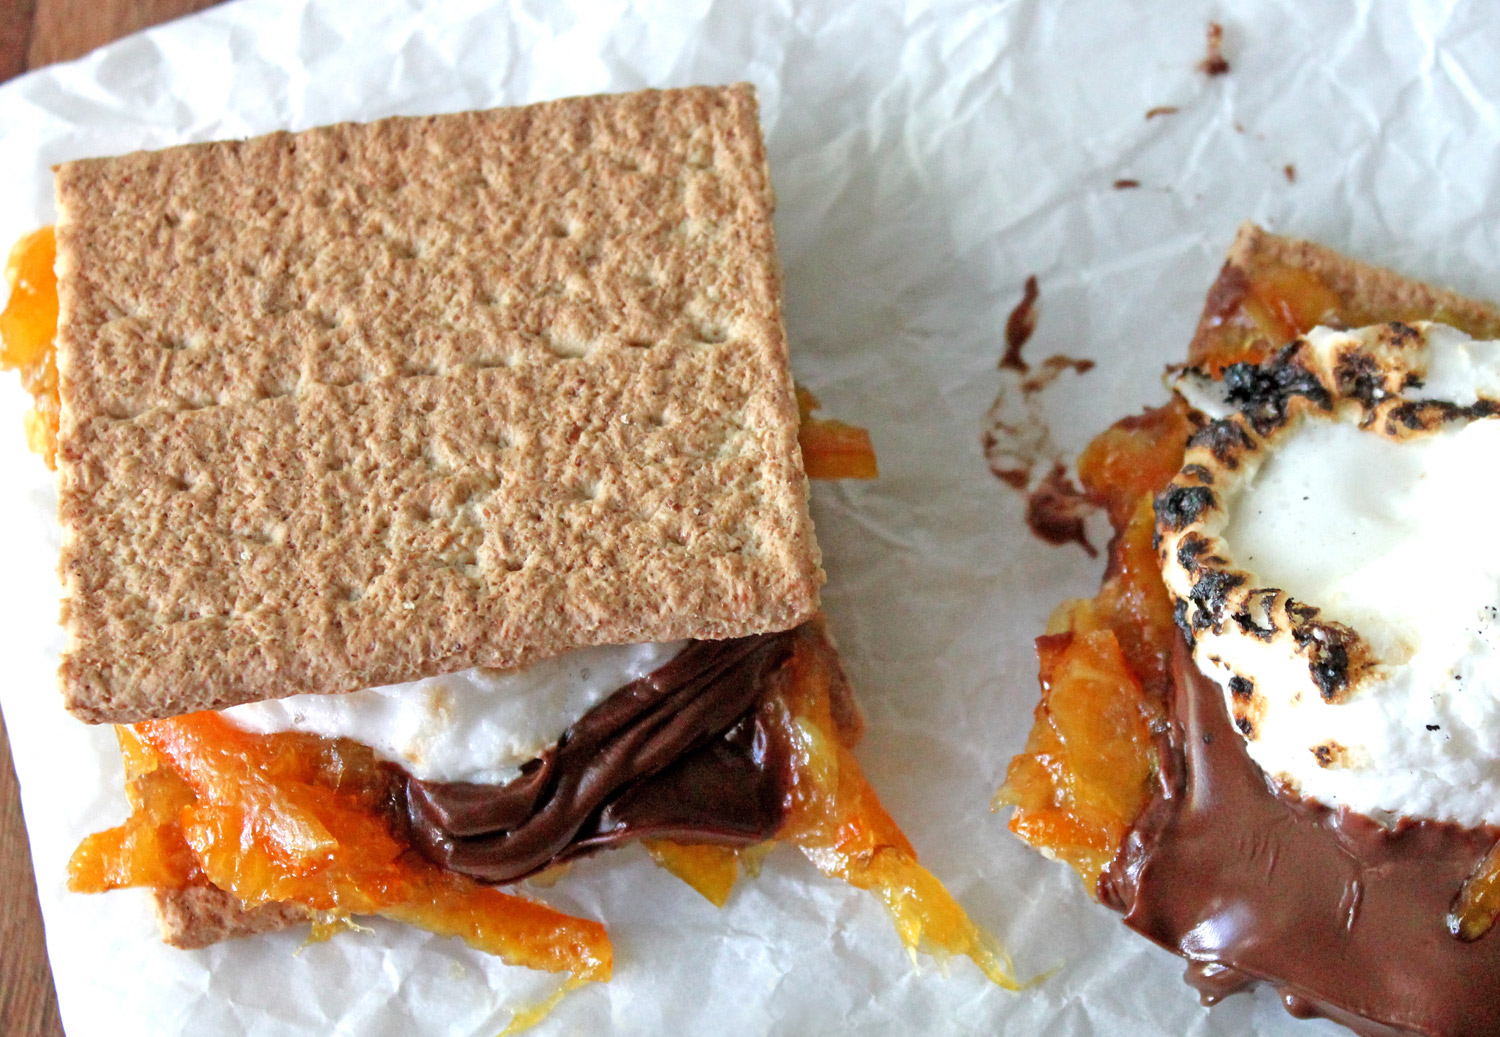 Orange Marmalade S'mores recipe - a gooey cocoction of chocolate, marmalade, and marshmellows.